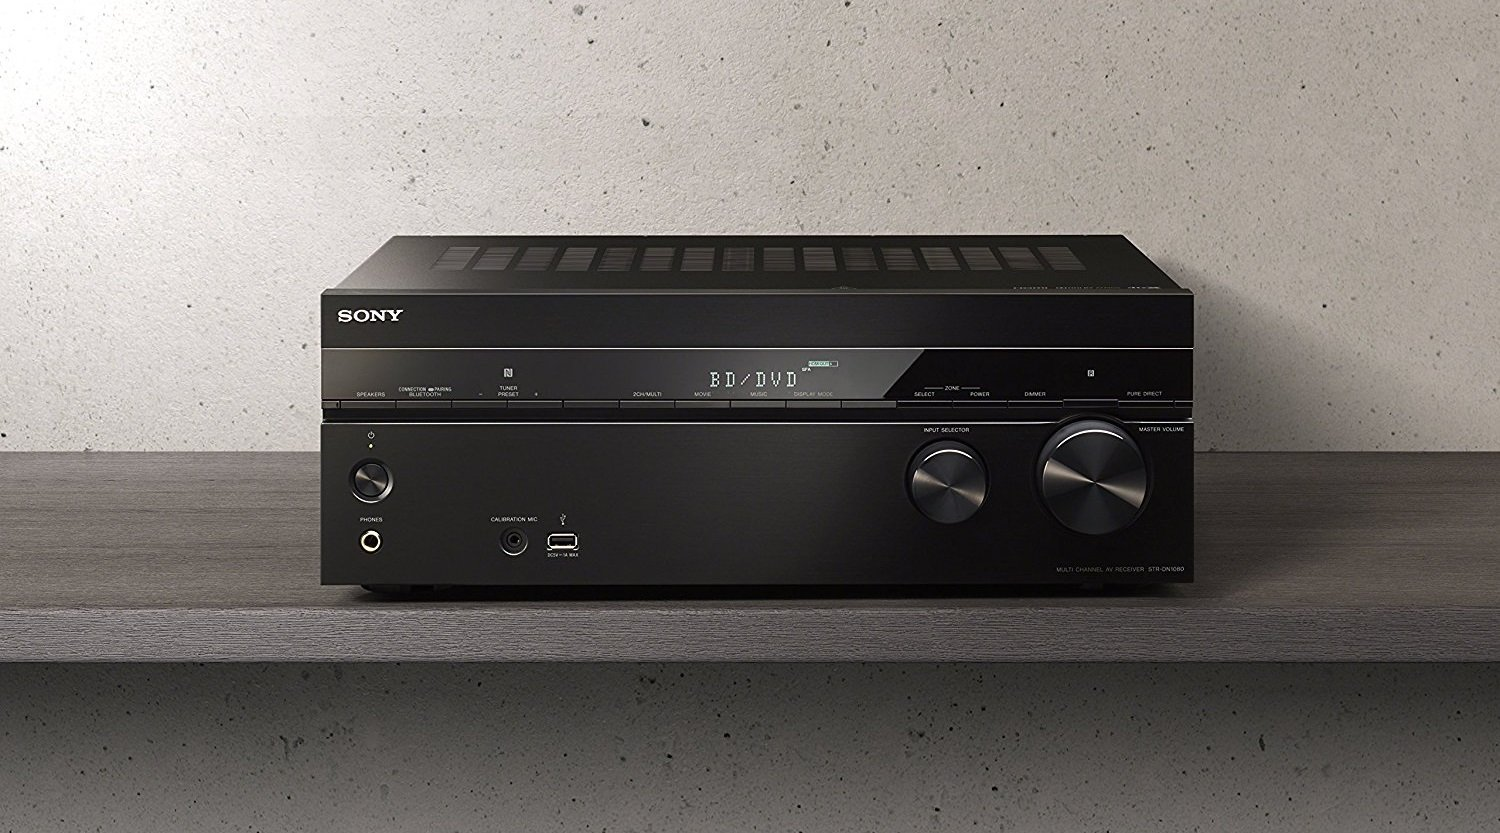 Best AV receivers 2018: The best Dolby Atmos, 5.1 and multiroom AV receivers to buy